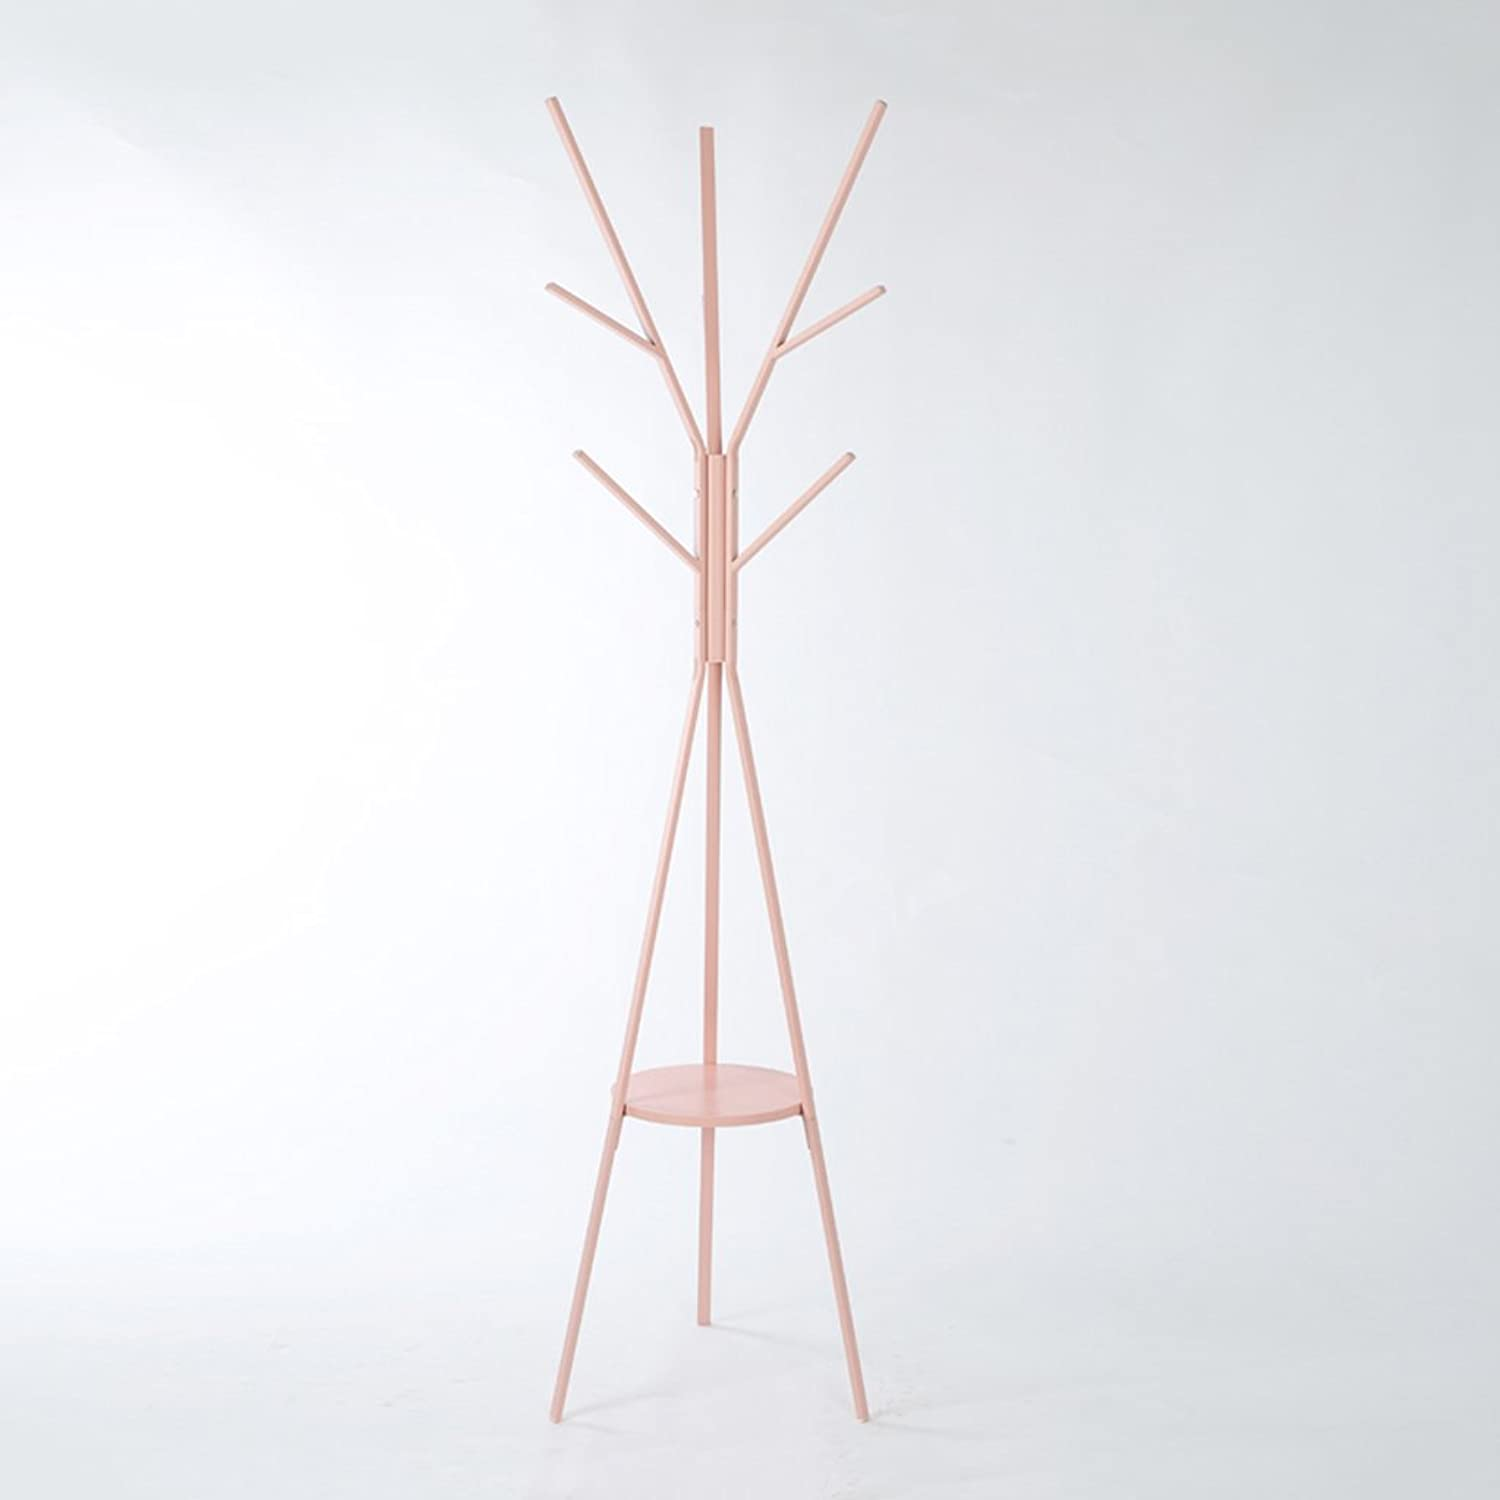 Floor Clothes Racks Bedroom Hanging Clothing Rods Household Irons Branch Shelves (color   Pink)